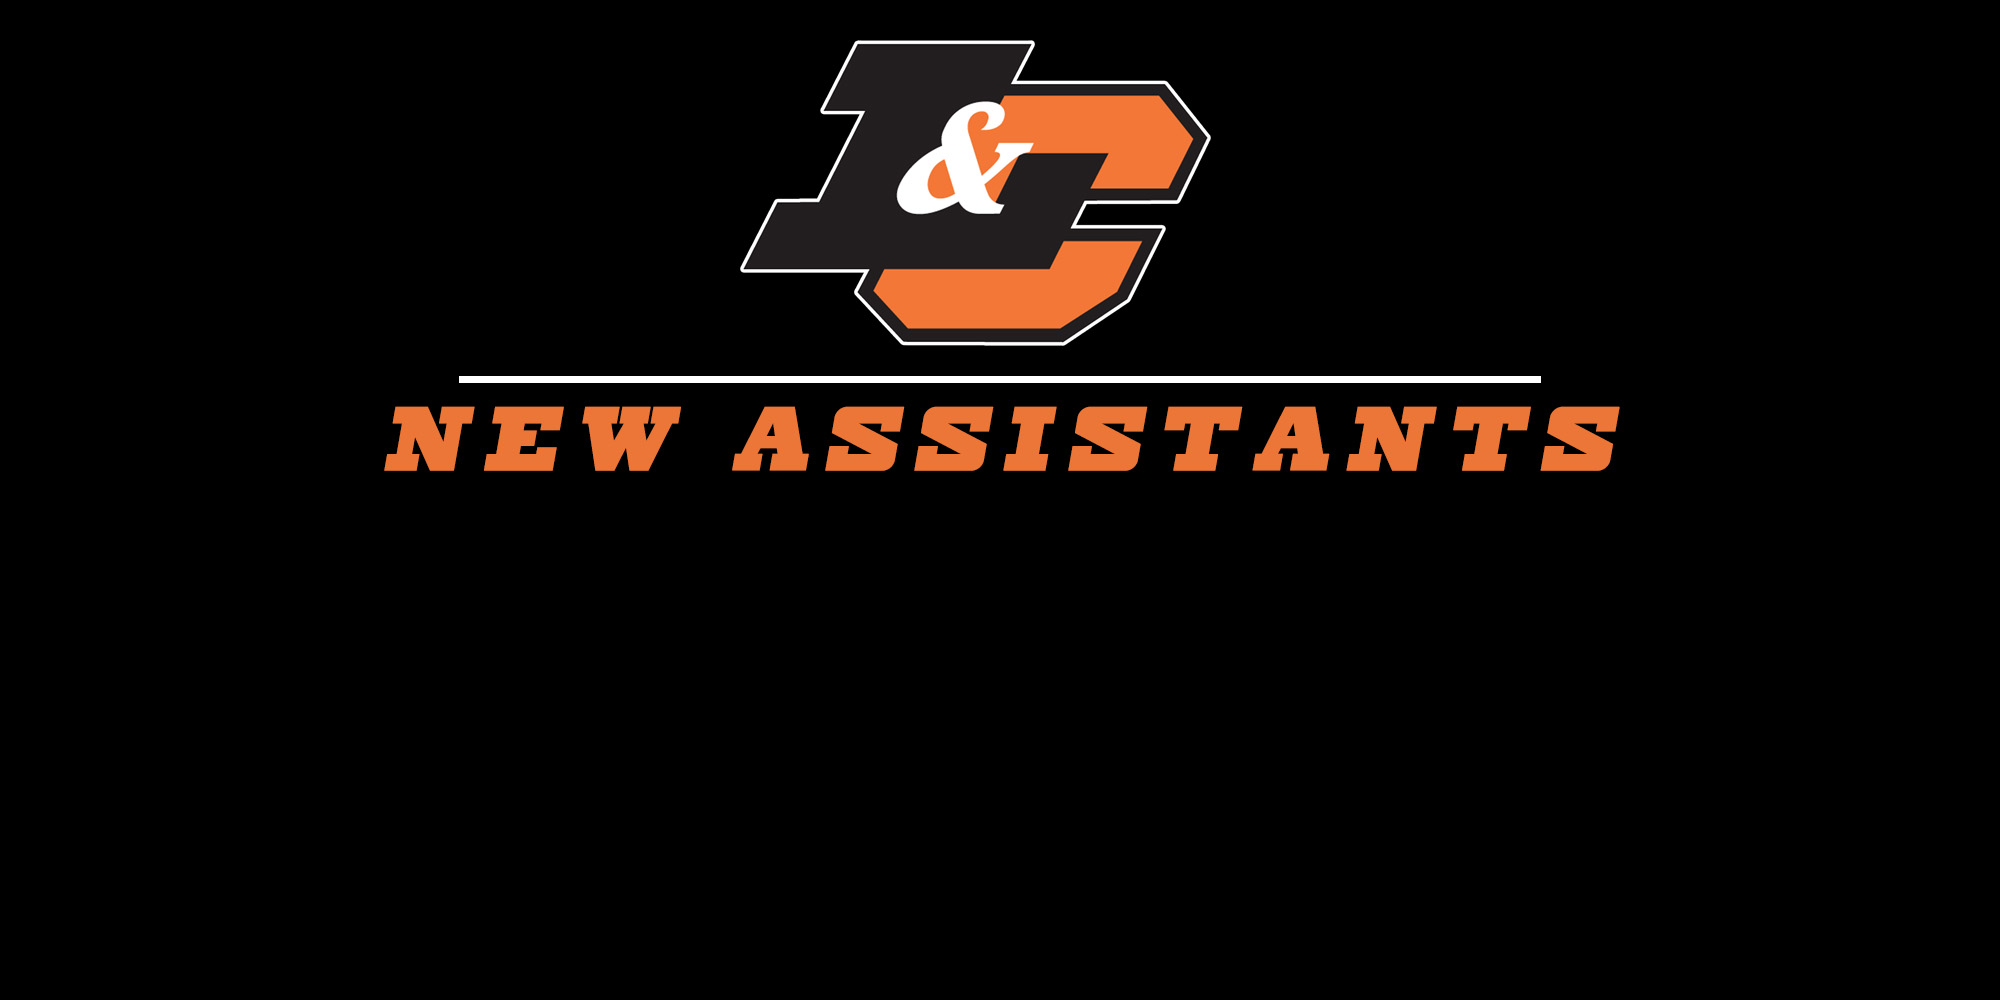 Introducing new assistants for 2018-19